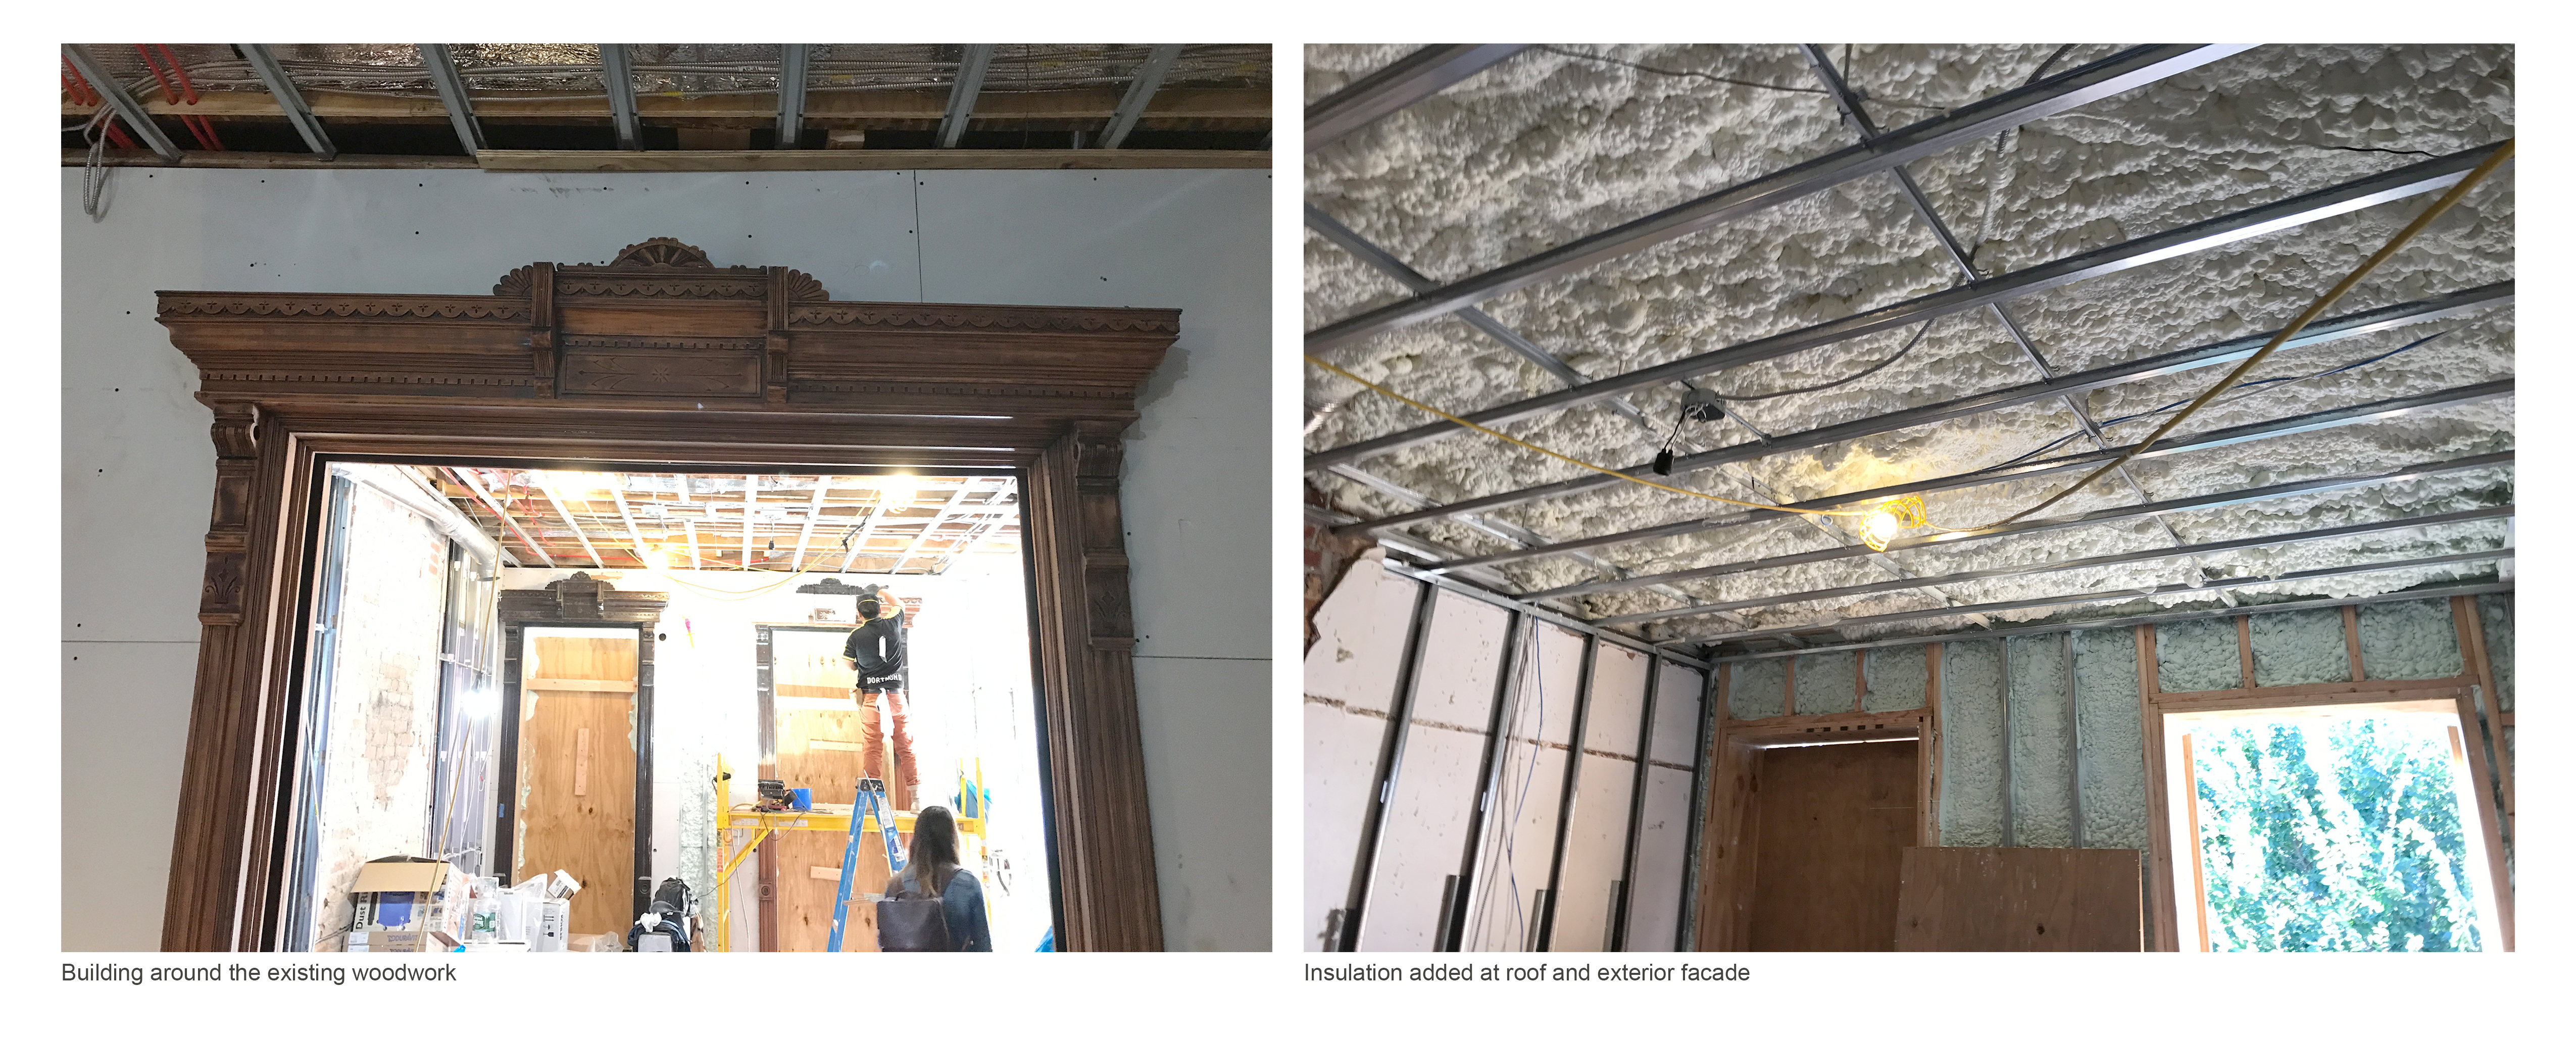 existing and insulation